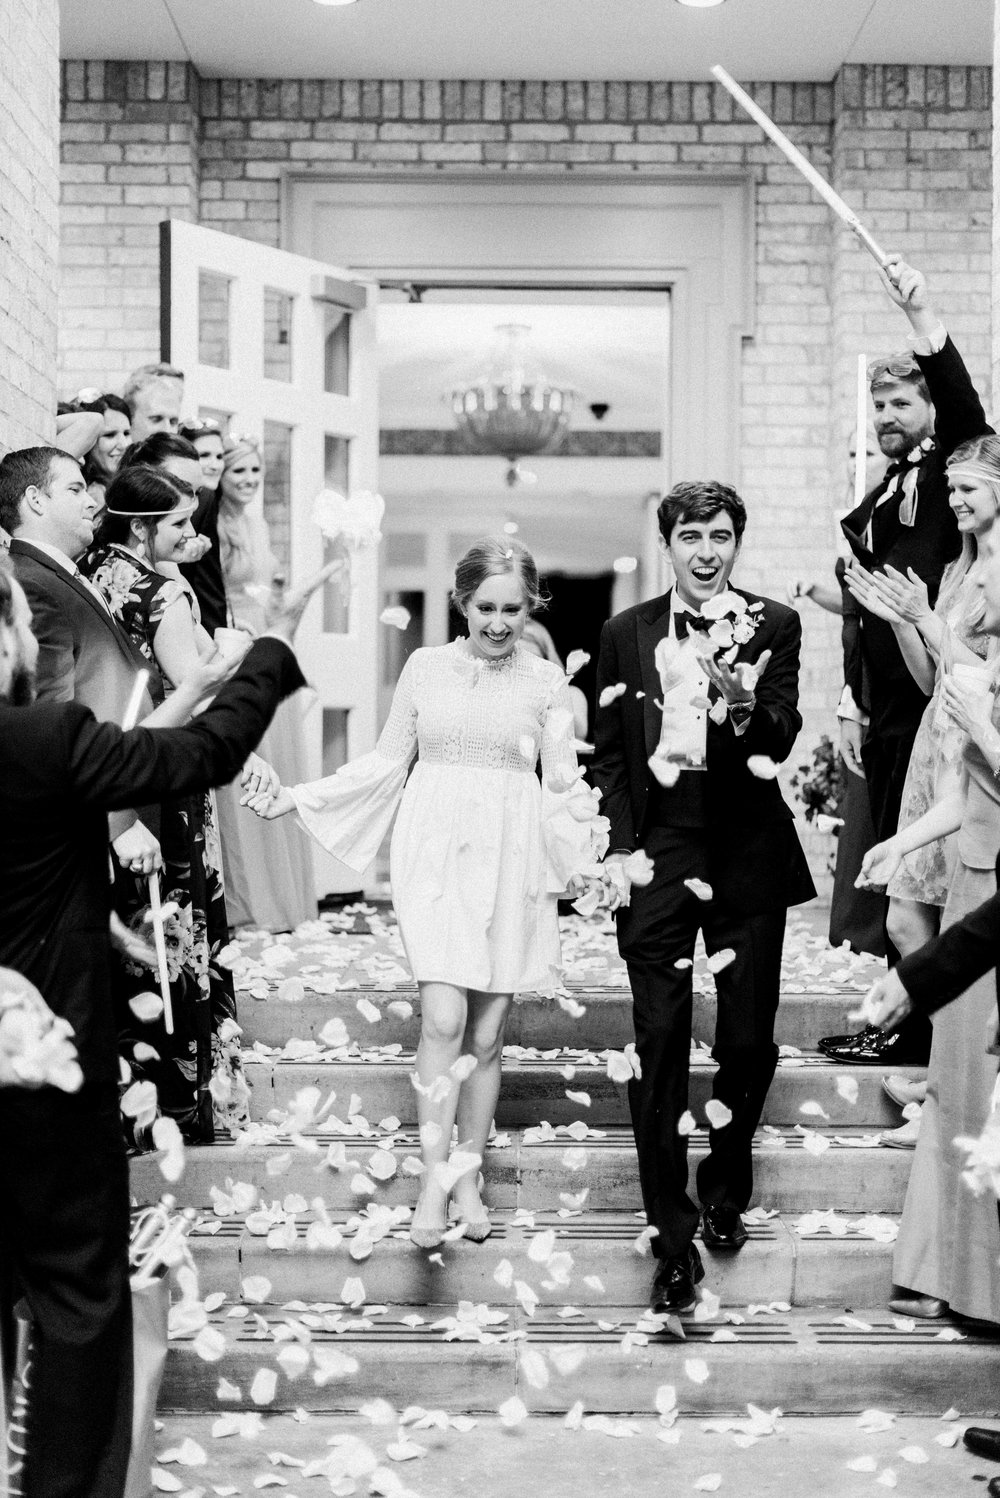 Fine-Art-Film-Houston-Wedding-Photographer-Best-Top-Luxury-Texas-Austin-Dallas-Destination-Dana-Fernandez-Photography-River-Oaks-Country-Club-South-Main-Baptist-Ceremony-Reception-Wedding-45.jpg